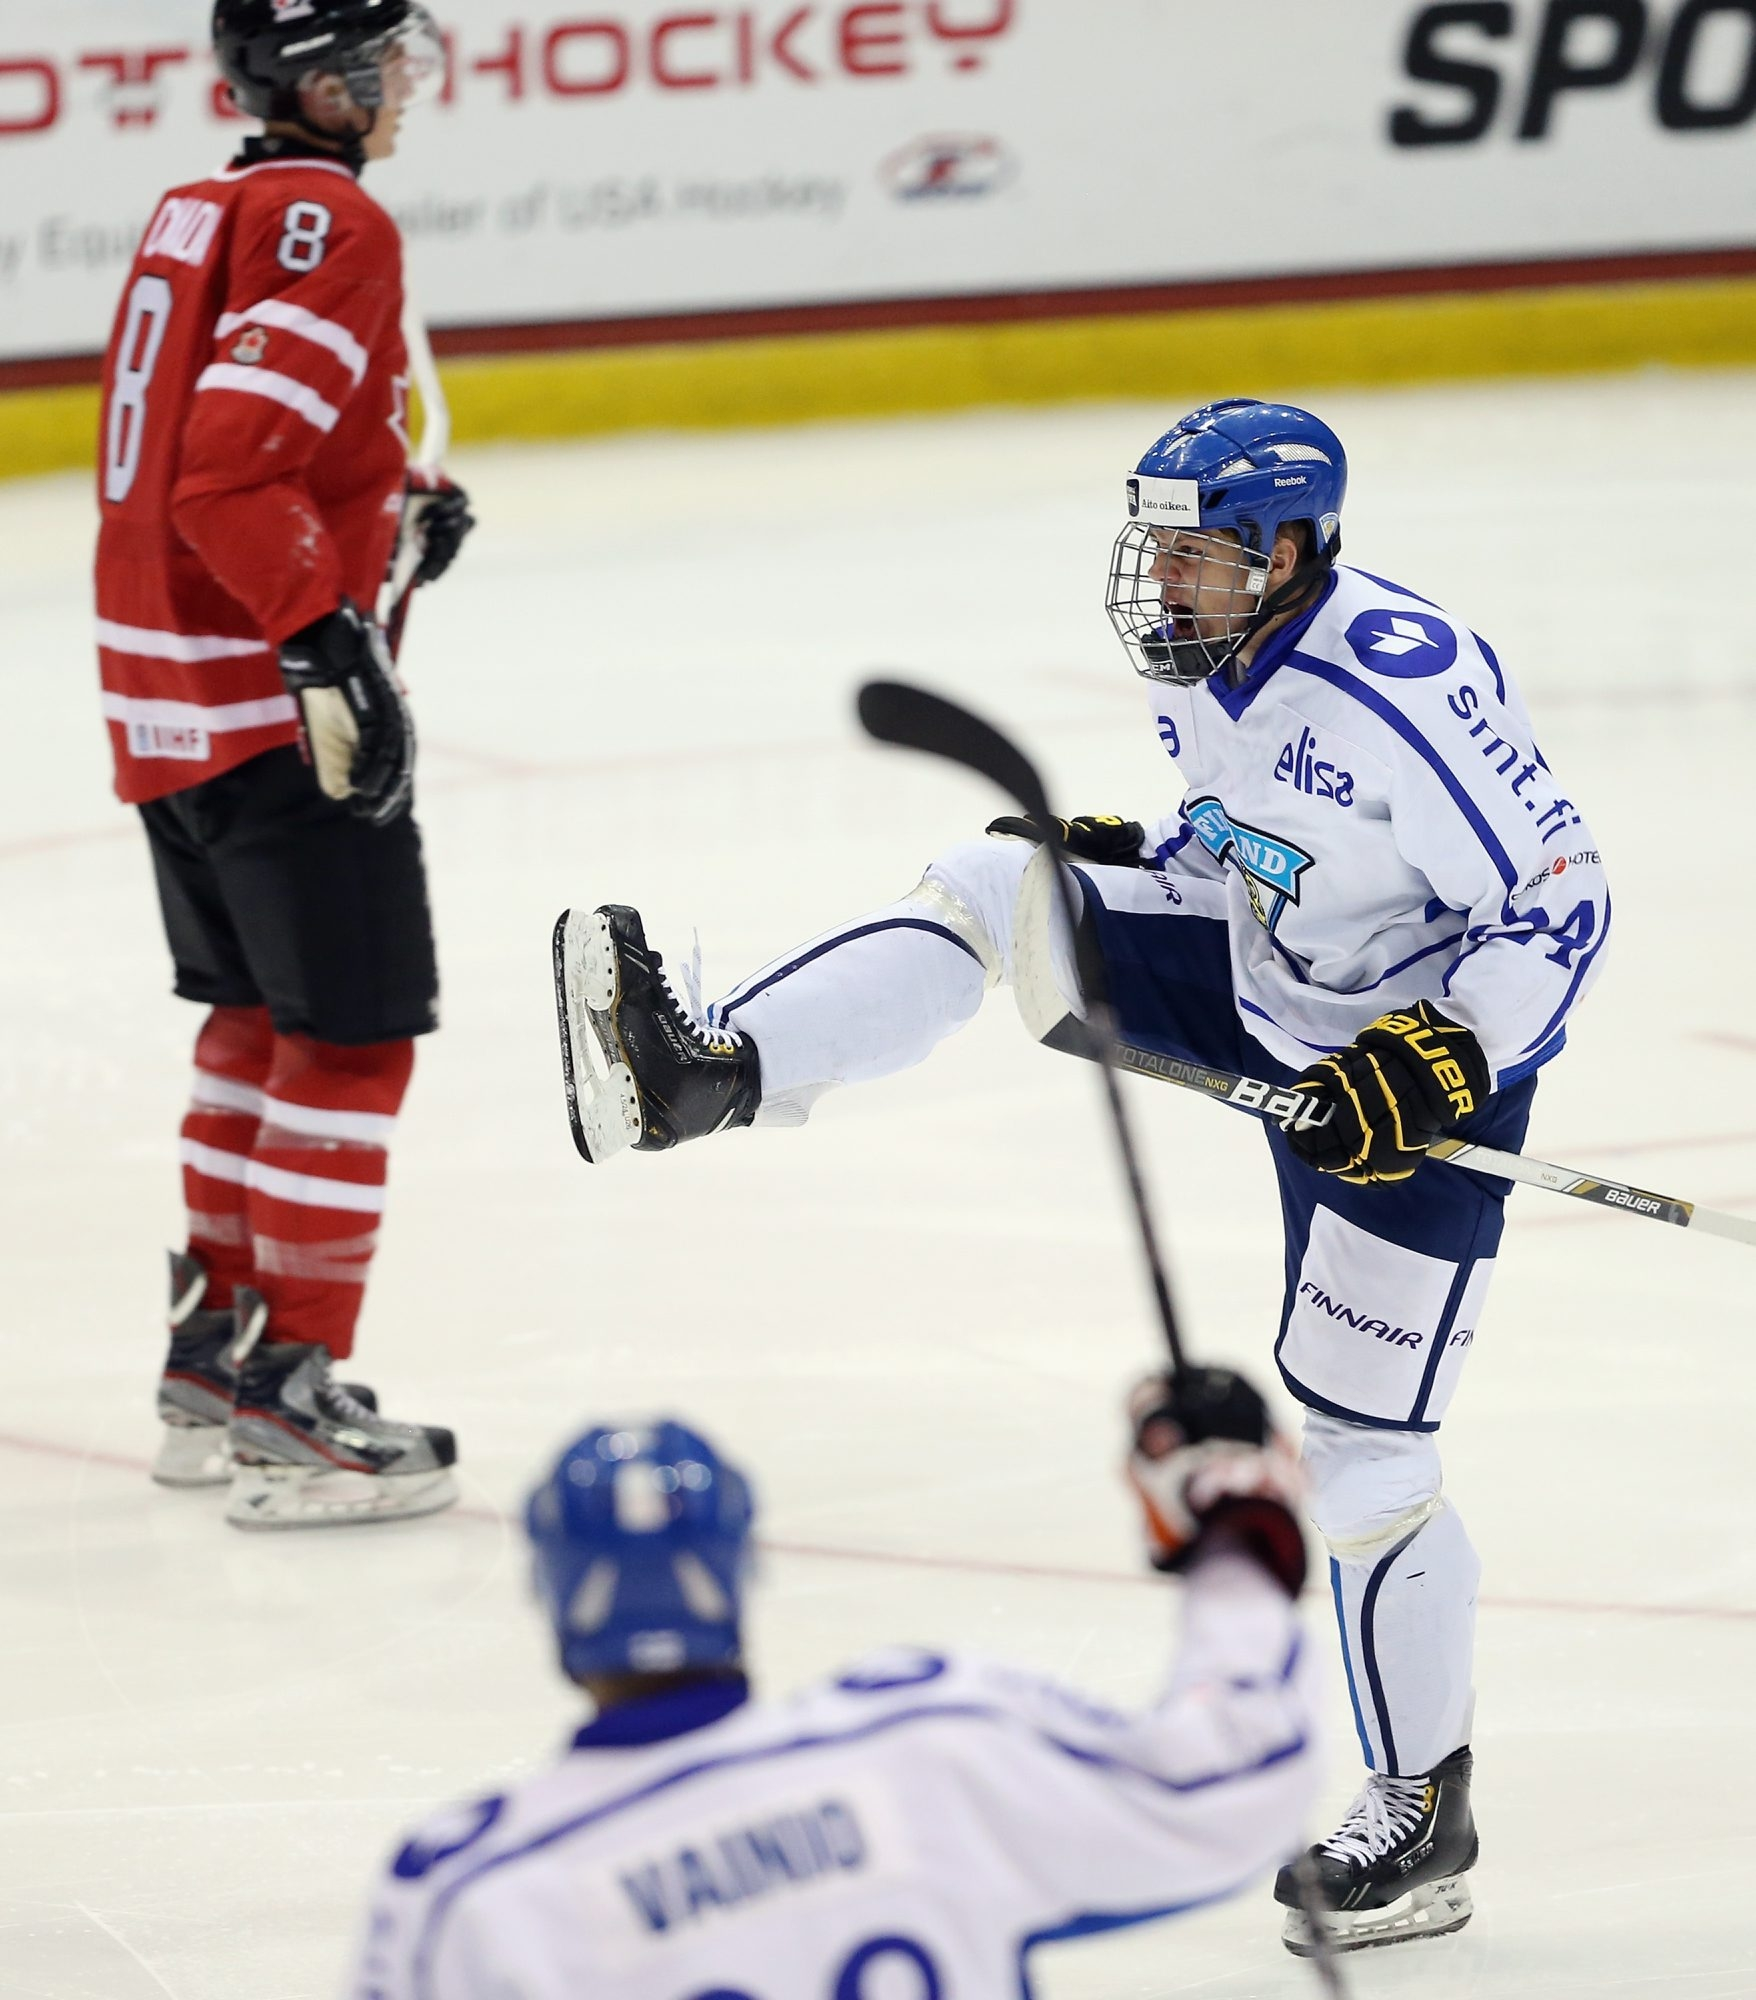 LAKE PLACID, NY - AUGUST 07: Kasperi Kapanen #24 of Team Finland celebrates his goal 51 seconds into the first period against Team Canada during the 2013 USA Hockey Junior Evaluation Camp at the Lake Placid Olympic Center on August 7, 2013 in Lake Placid, New York.  (Photo by Bruce Bennett/Getty Images)